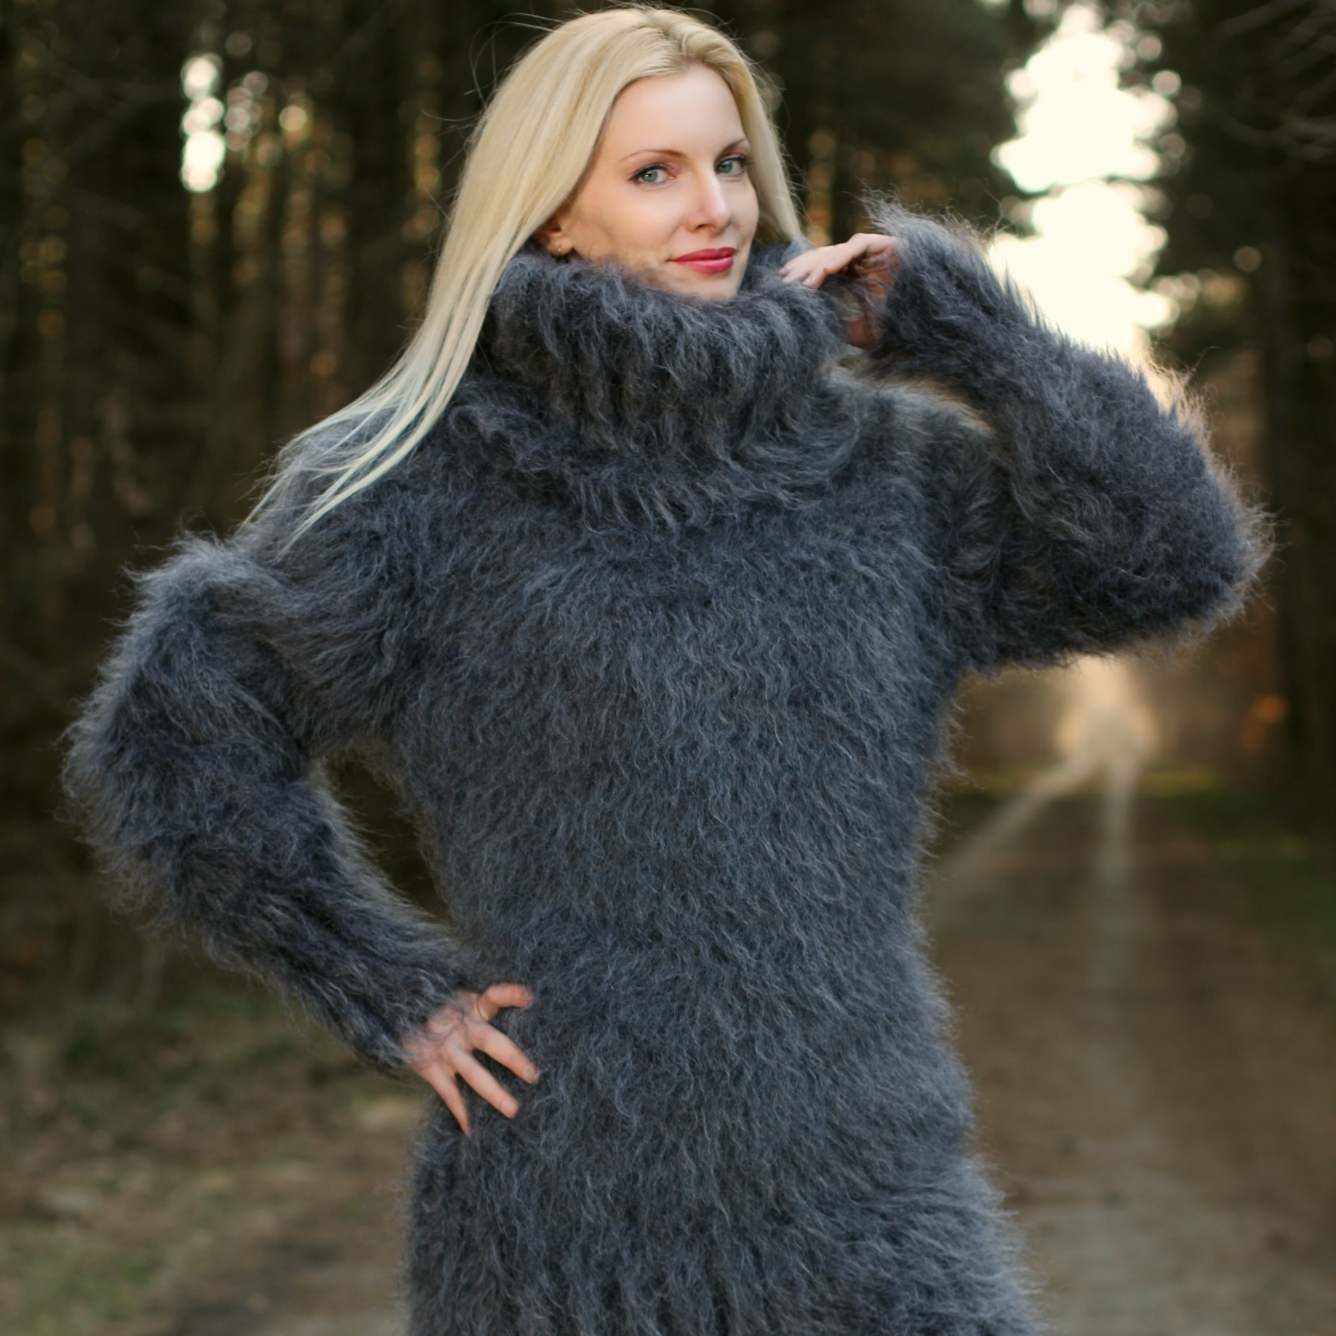 Fuzzy 100% hand knitted mohair sweater dress in bluish gray ...